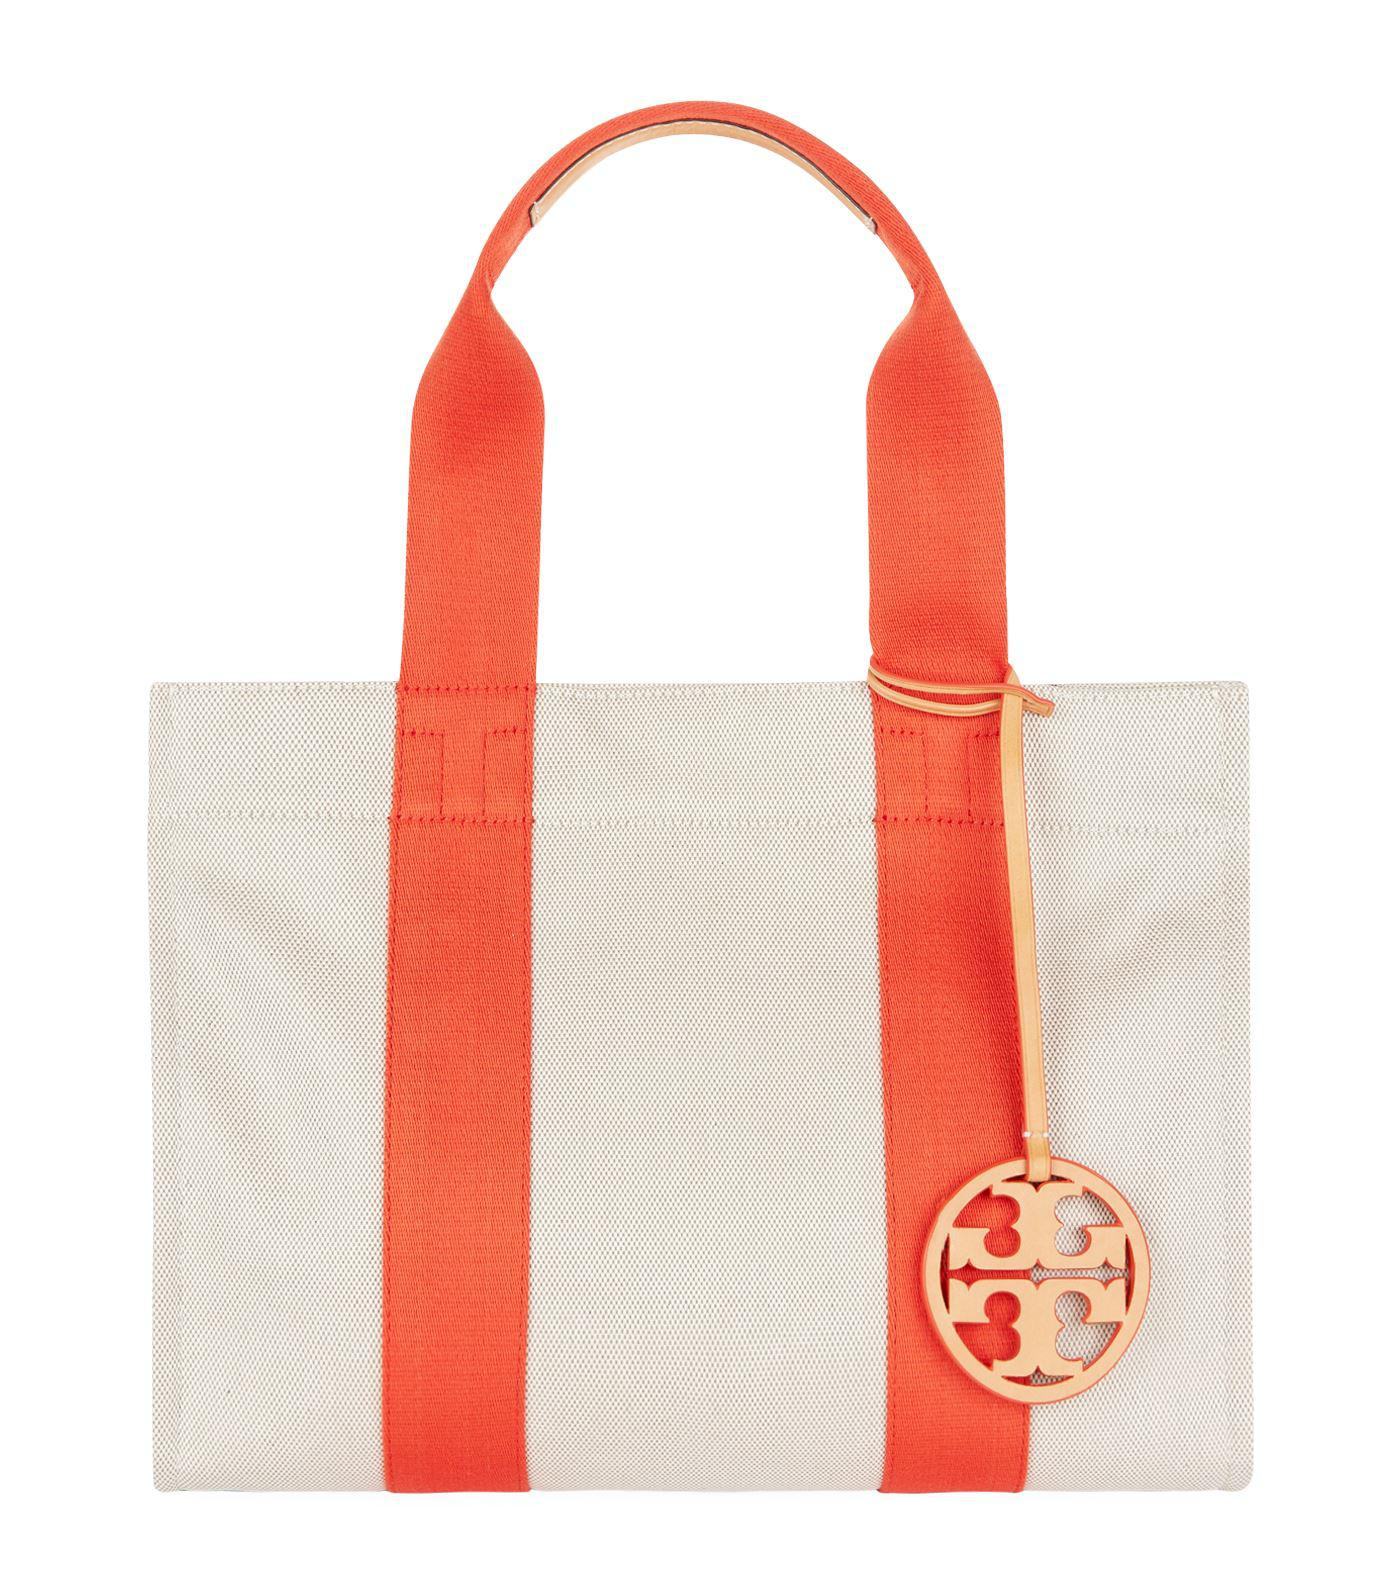 6e156f1d761 Tory Burch Miller Canvas Tote Bag, Beige, One Size in Natural - Lyst